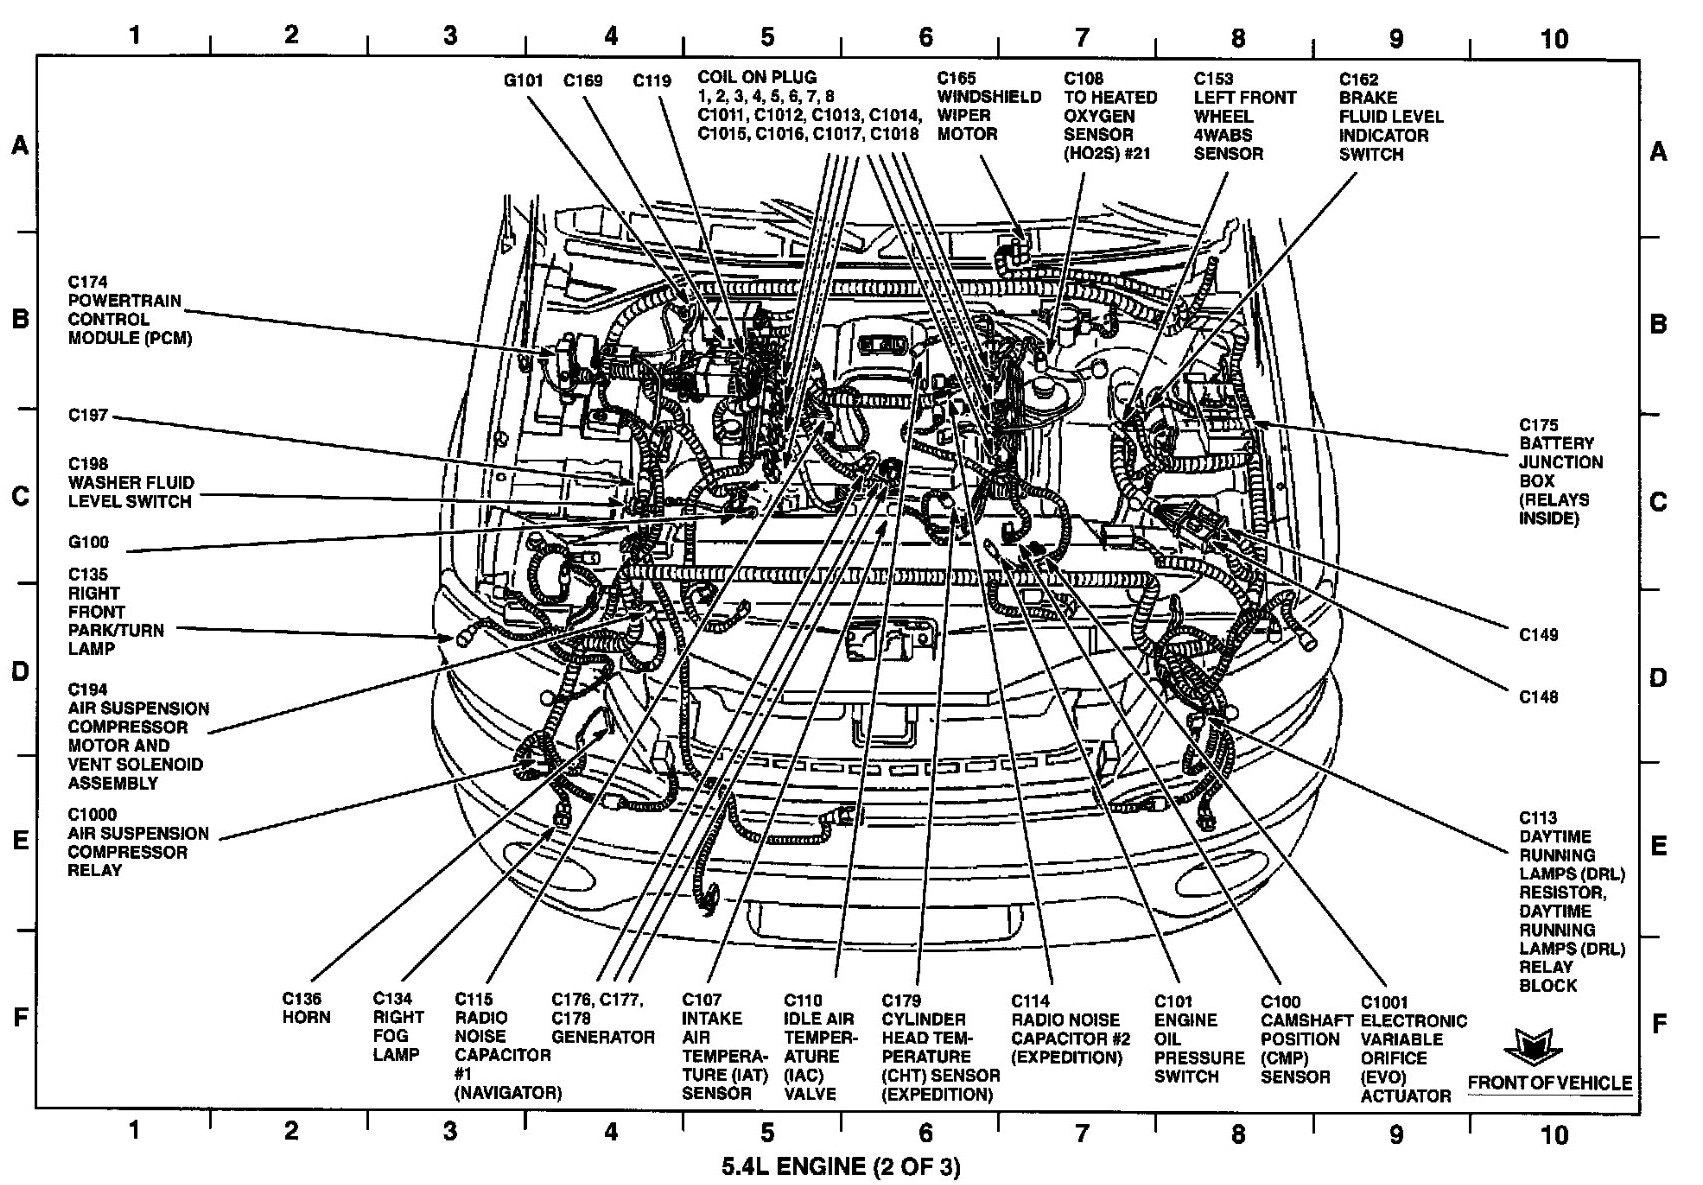 DIAGRAM] 201ford Focus Engine Diagram FULL Version HD Quality Engine Diagram  - DIAGRAMTHEPLAN.SAINTMIHIEL-TOURISME.FRSaintmihiel-tourisme.fr